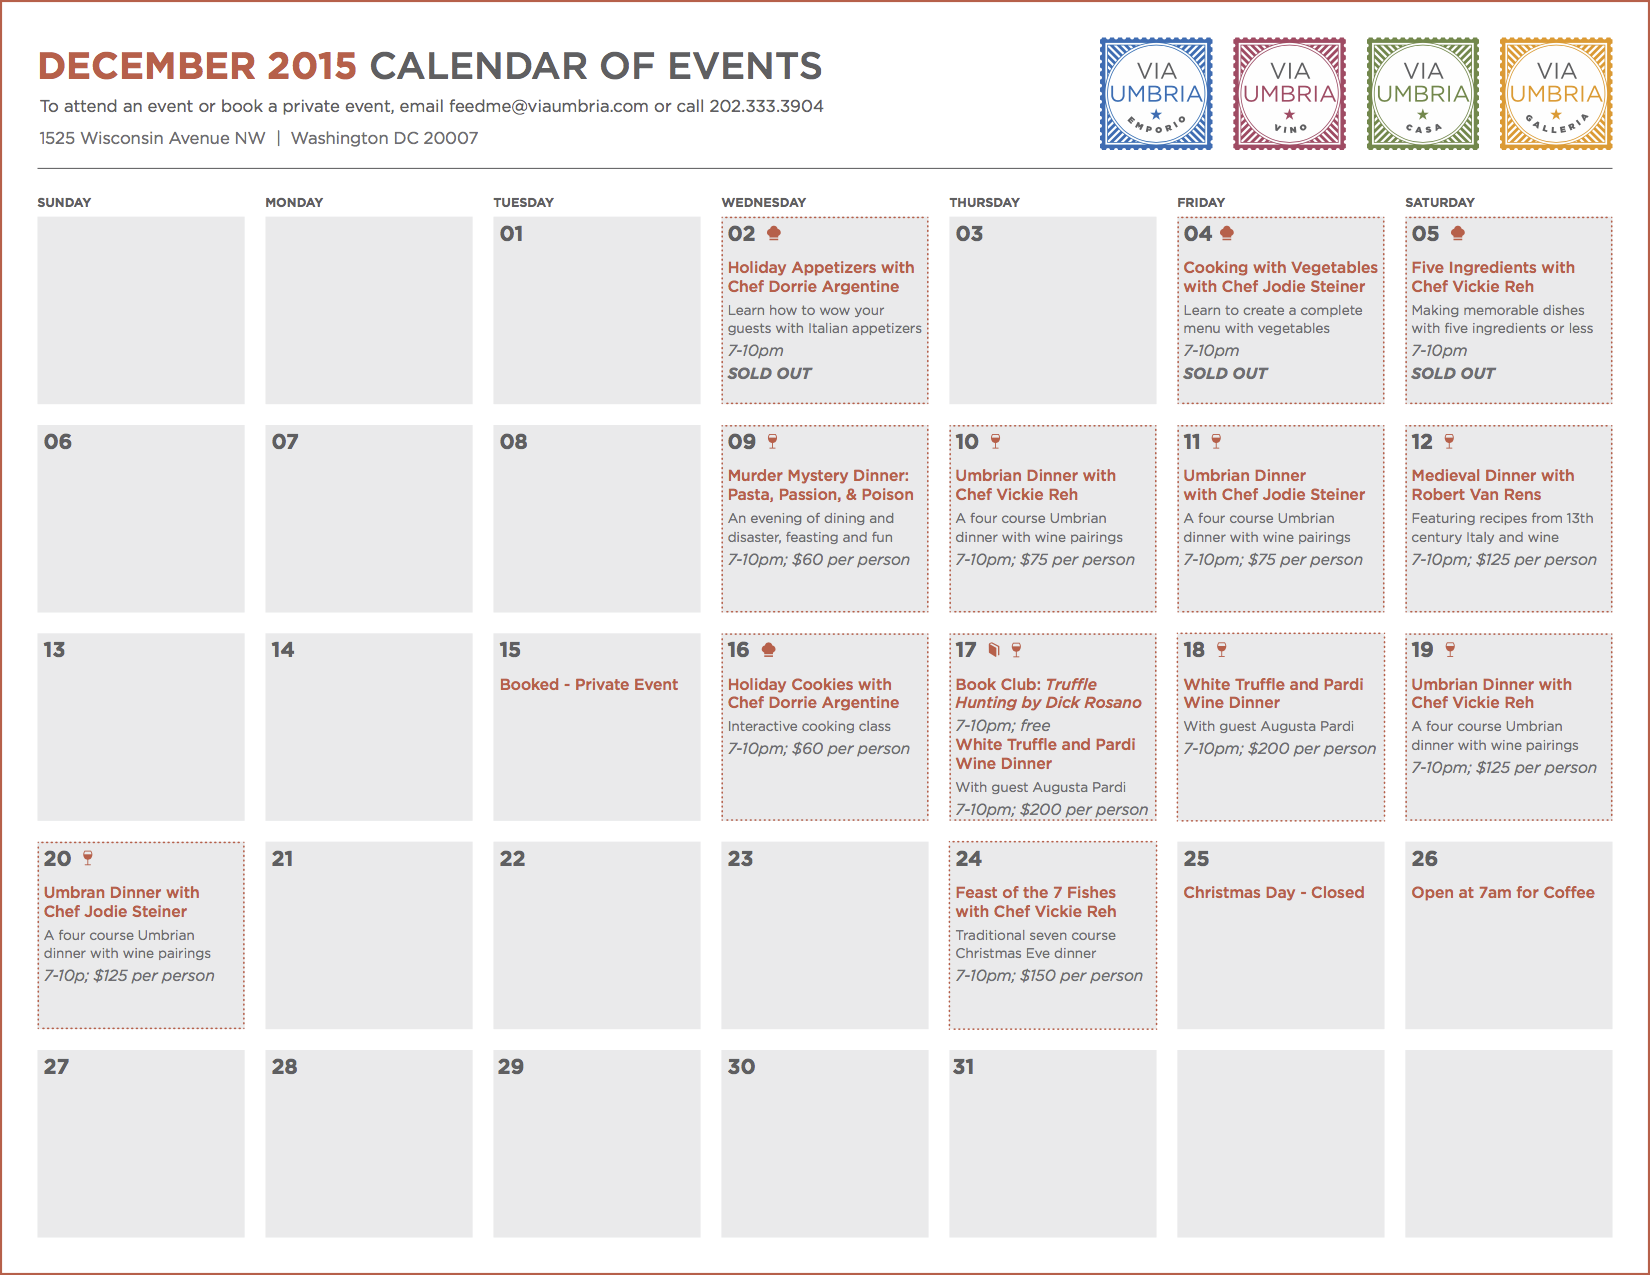 December_Event_Calendar_-_Via_Umbria_1